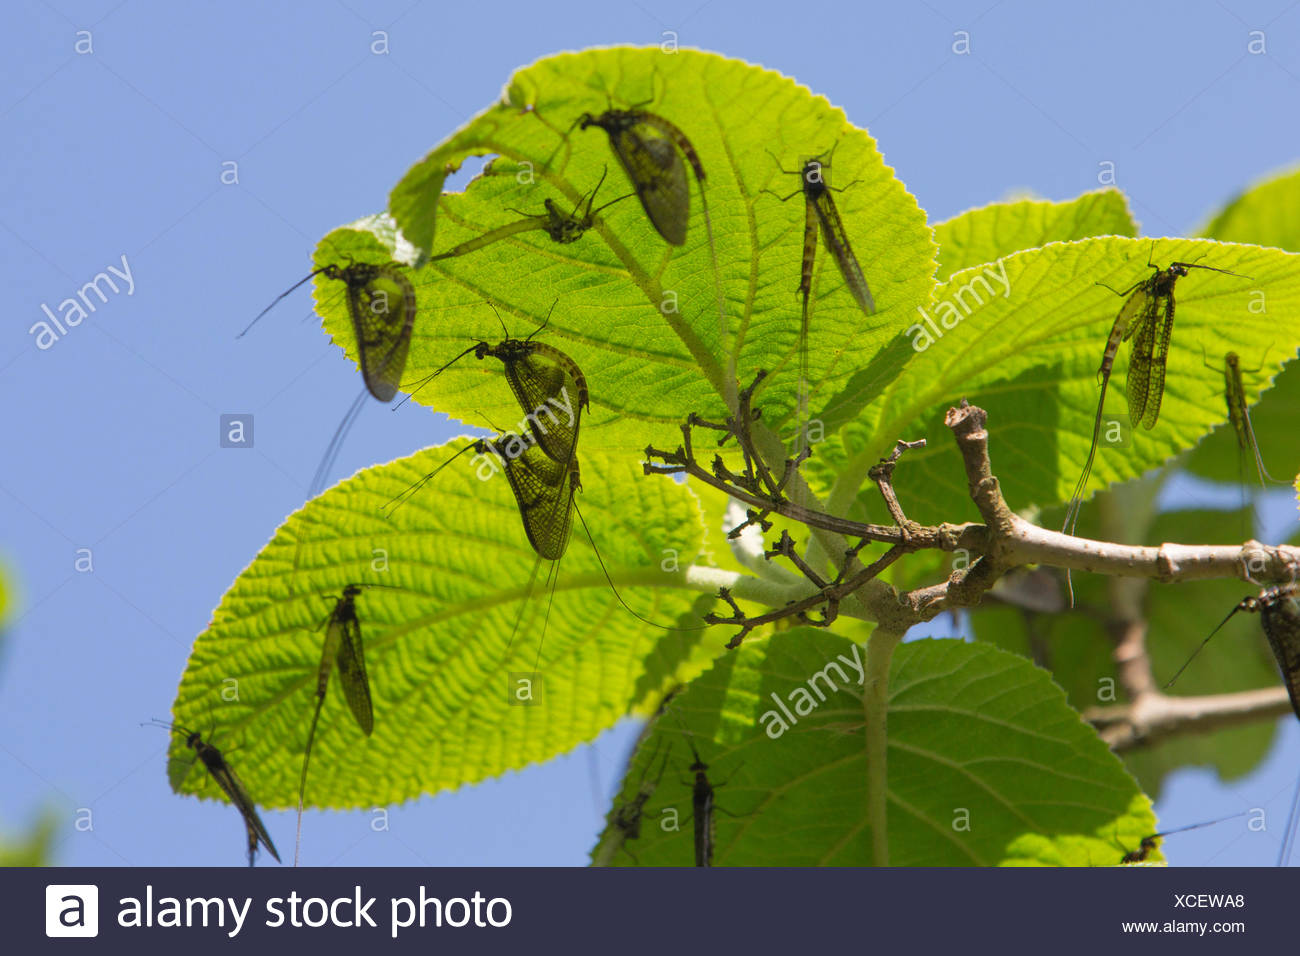 mayfly (cf. Ephemera vulgata), several imagines on leaves after skinning, Germany, Bavaria - Stock Image